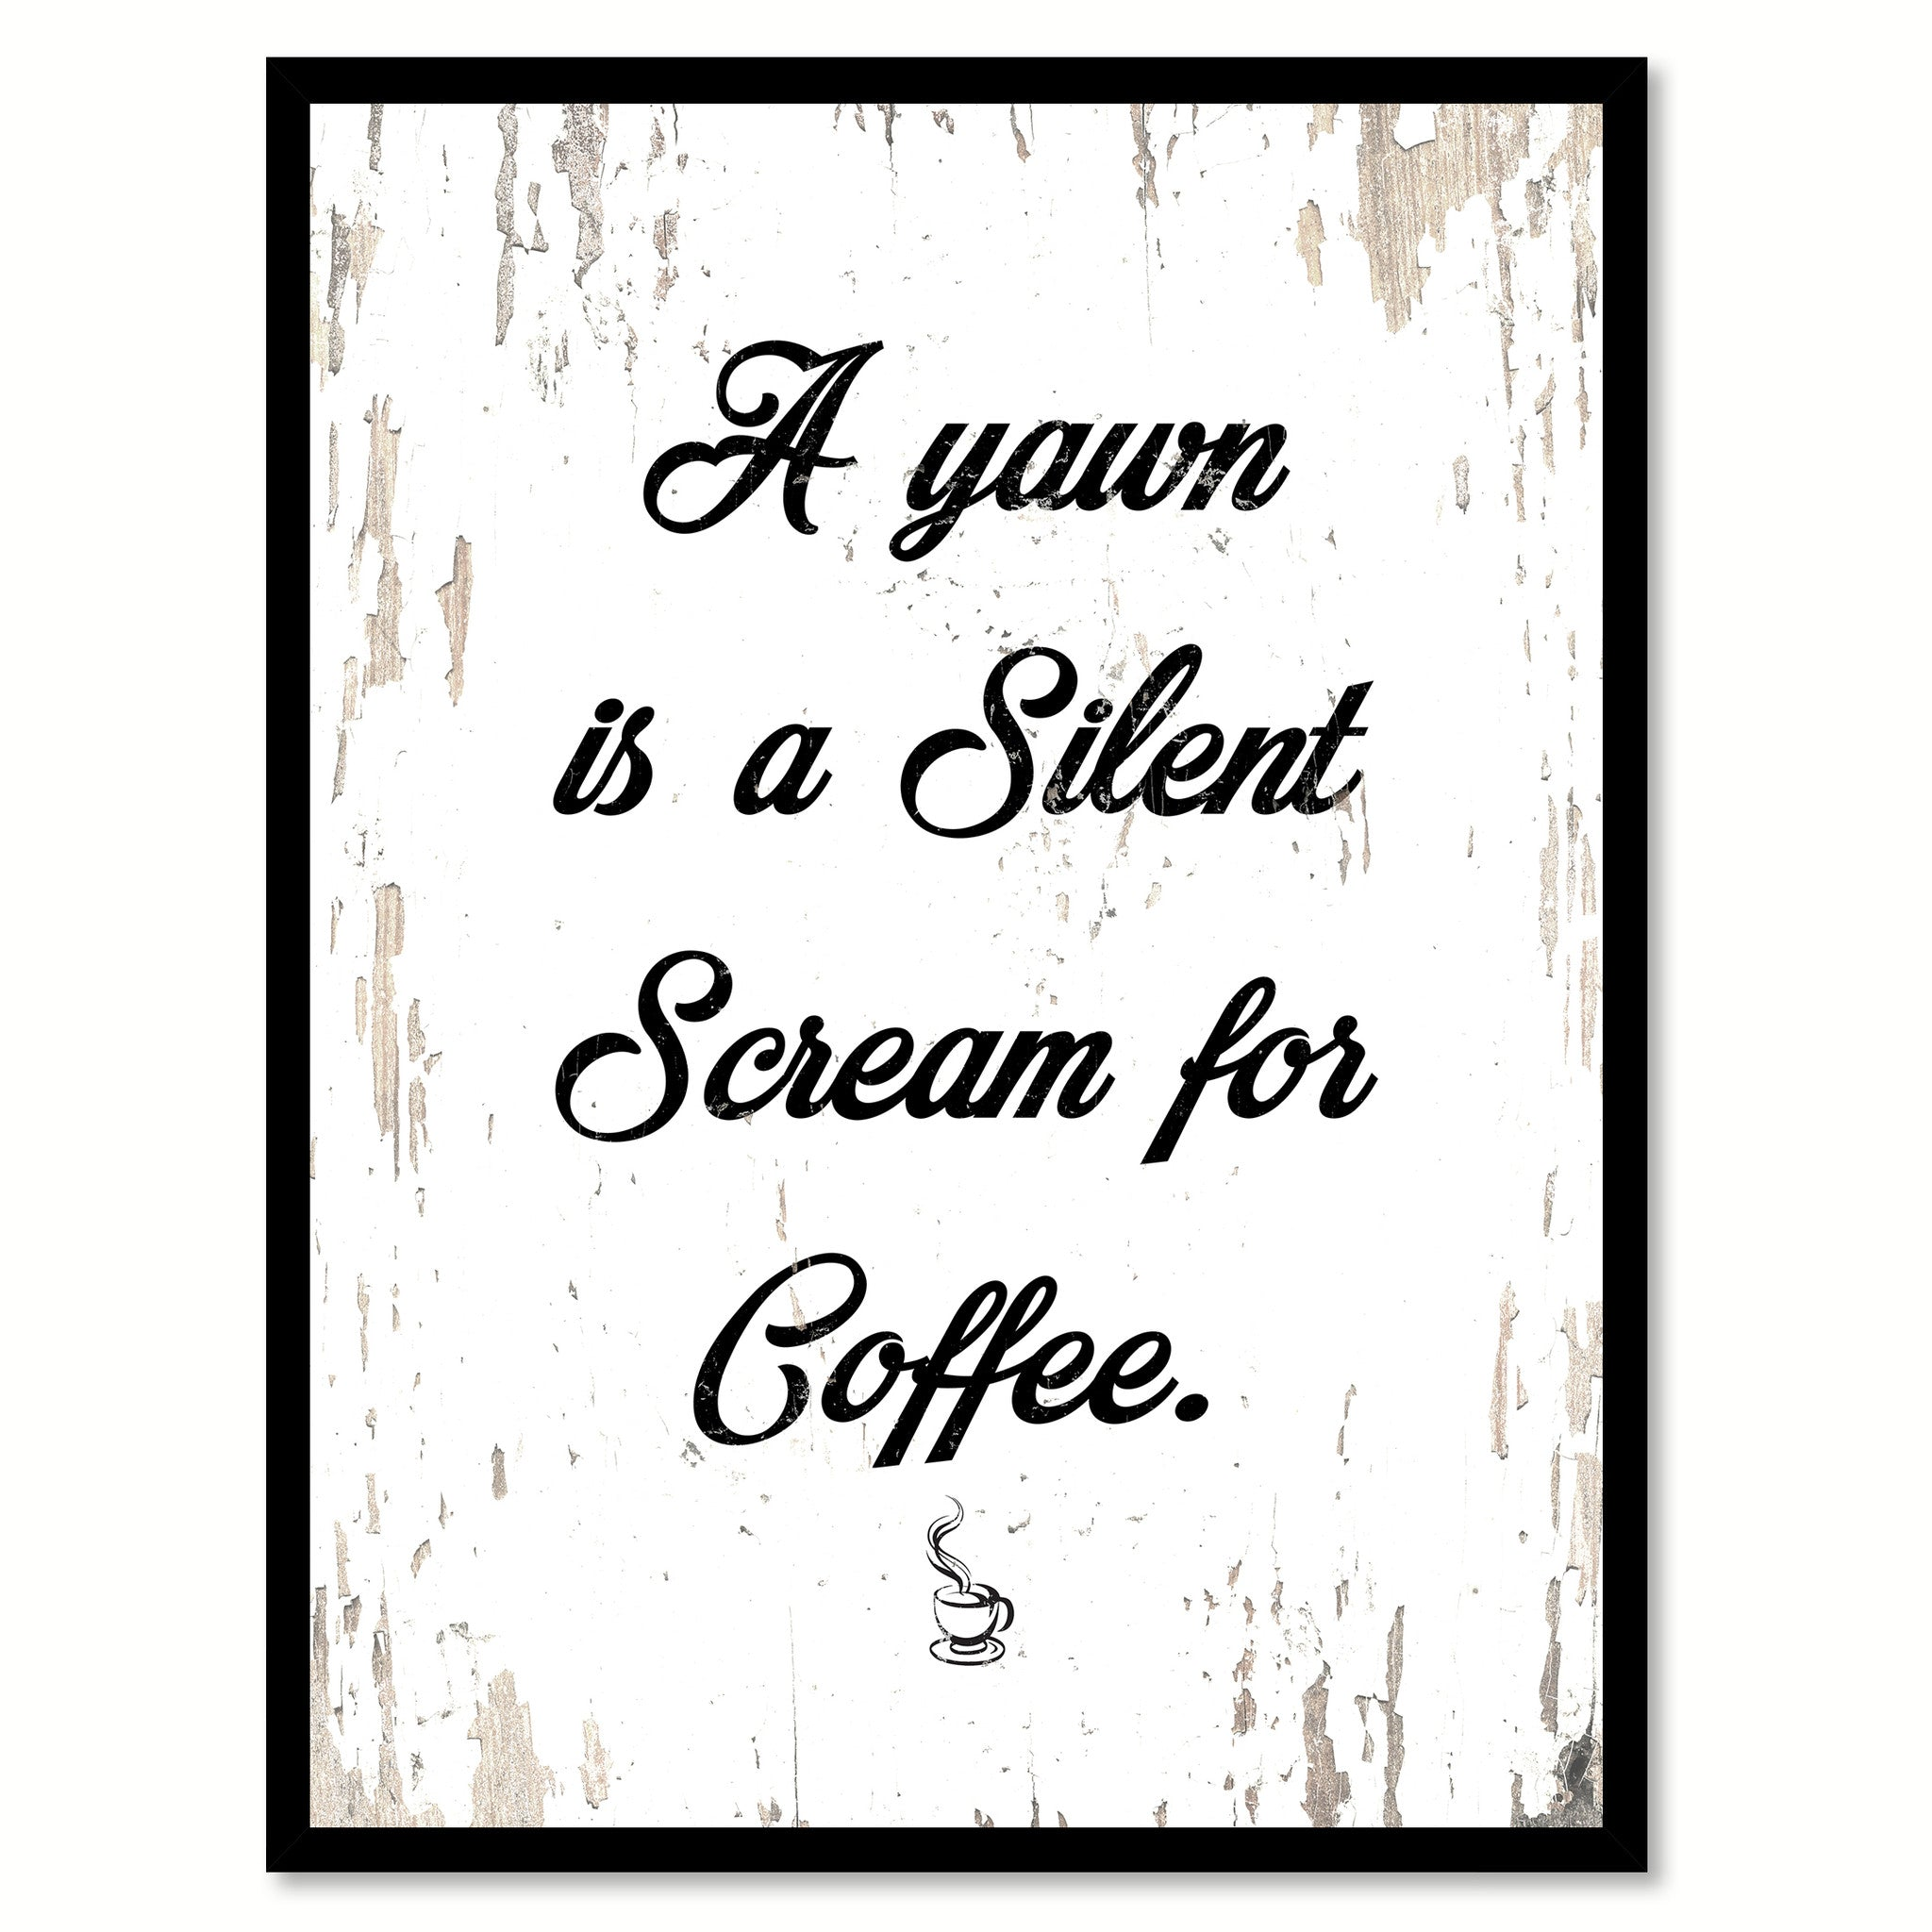 A Yawn Is A Silent Scream For Coffee Quote Saying Canvas Print with Picture Frame